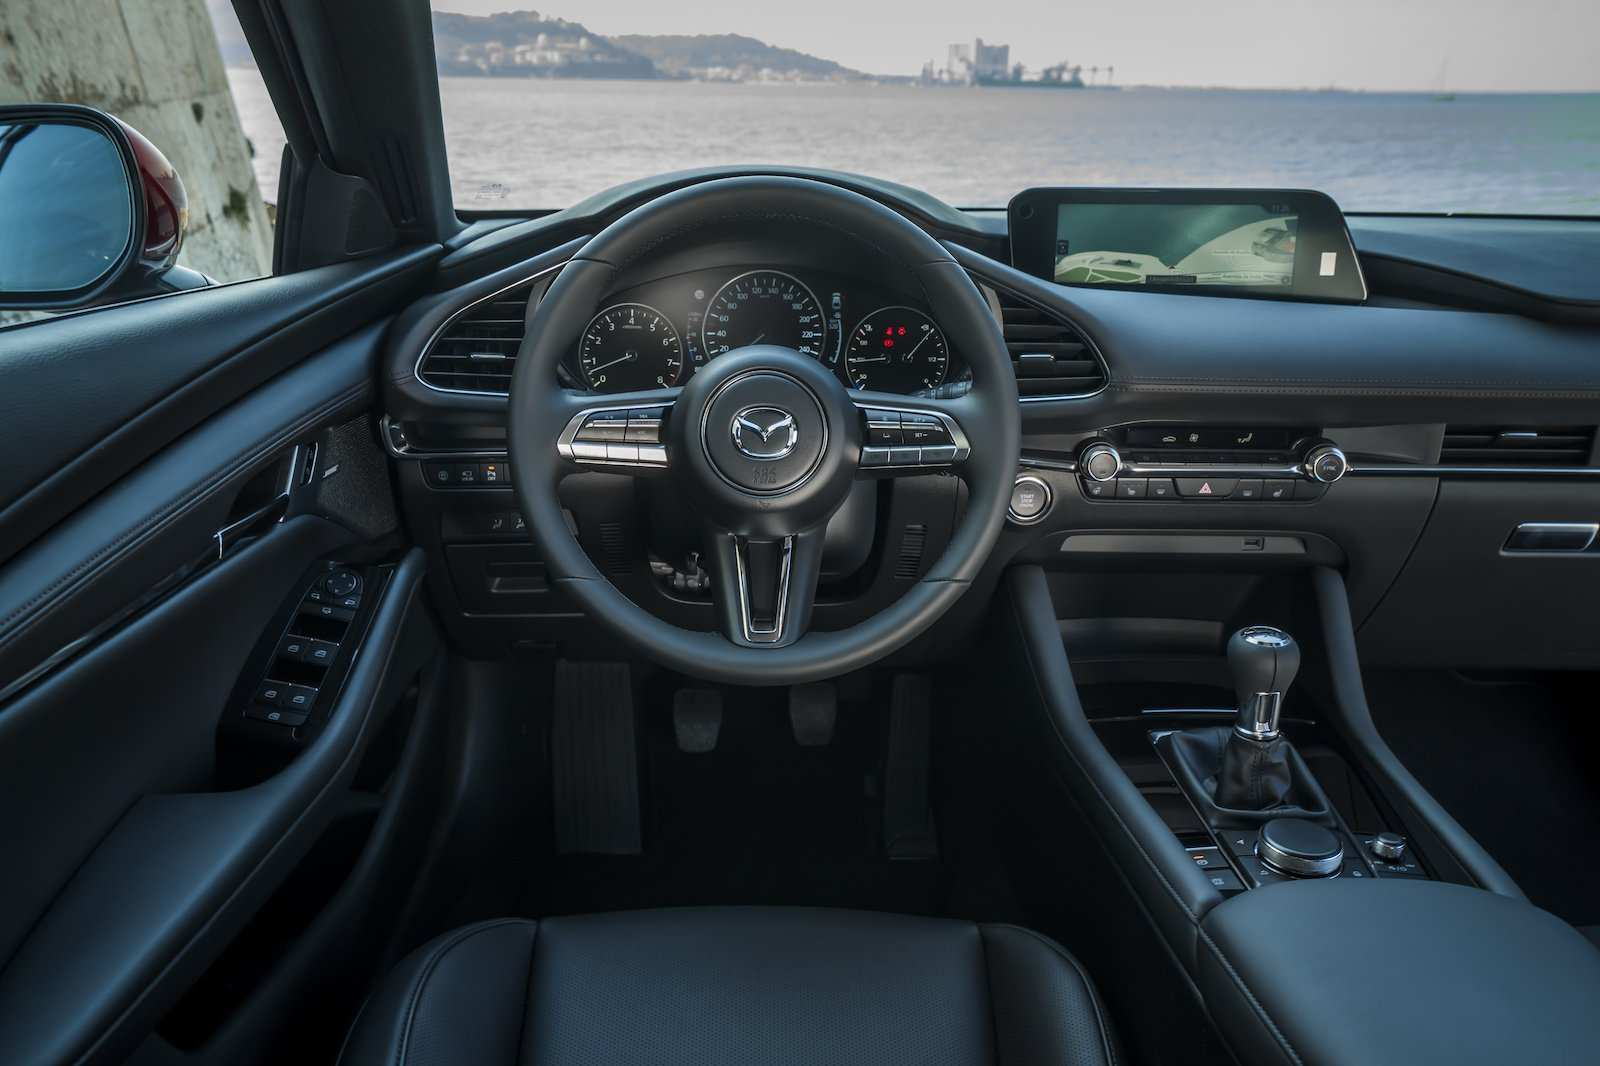 78 Gallery of Mazda 3 2019 Interior New Review with Mazda 3 2019 Interior